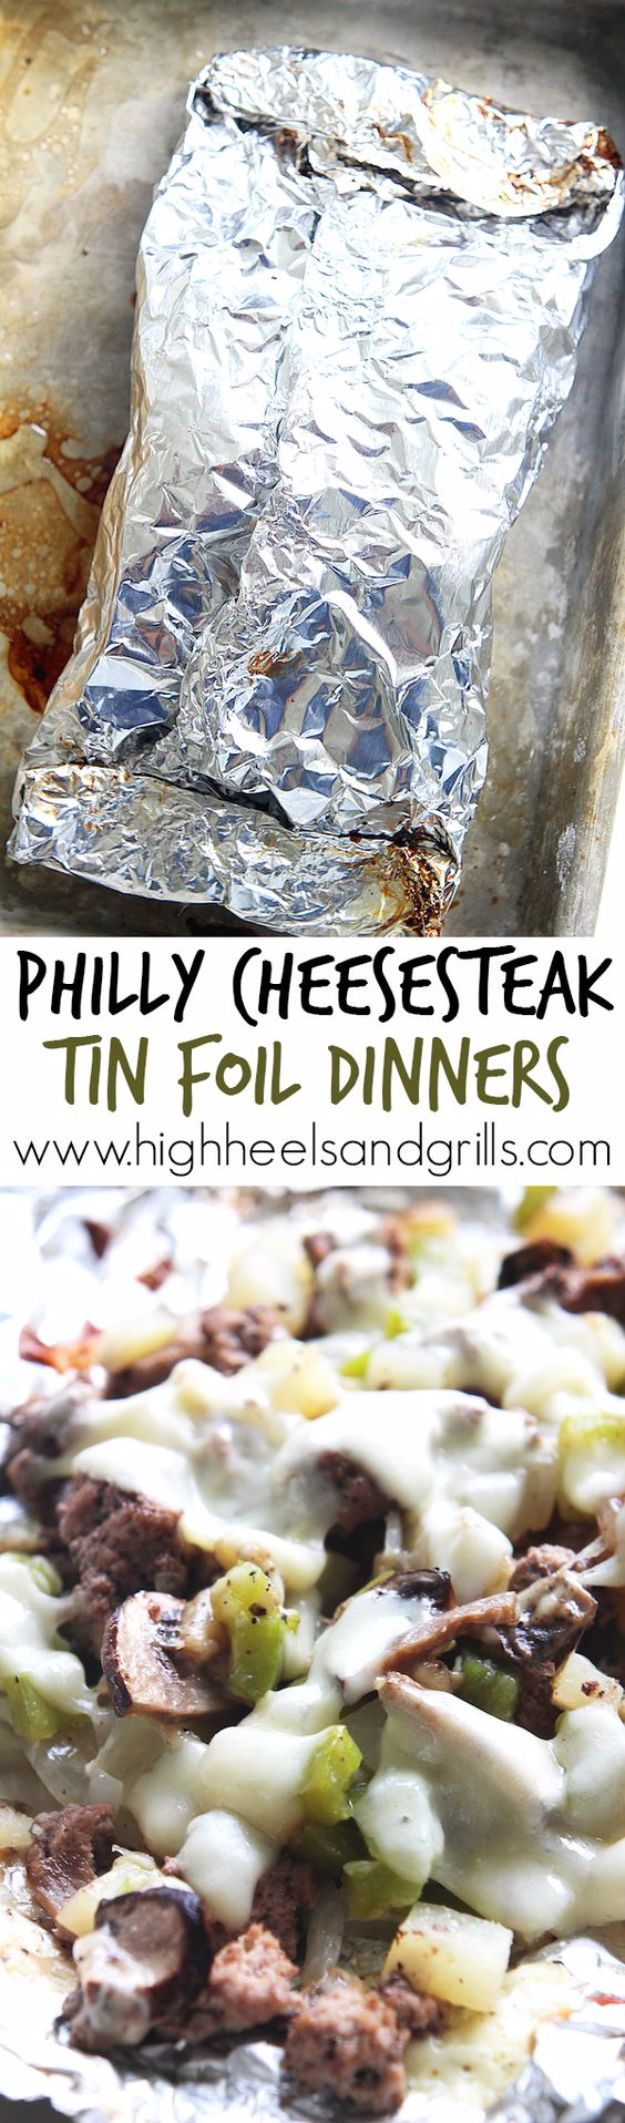 Tin Foil Camping Recipes - Philly Cheese Steak Sandwich Foil Pack - DIY Tin Foil Dinners, Ideas for Camping Trips and On Grill. Hamburger, Chicken, Healthy, Fish, Steak , Easy Make Ahead Recipe Ideas for the Campfire. Breakfast, Lunch, Dinner and Dessert, Snacks all Wrapped in Foil for Quick Cooking #camping #tinfoilrecipes #campingrecipes